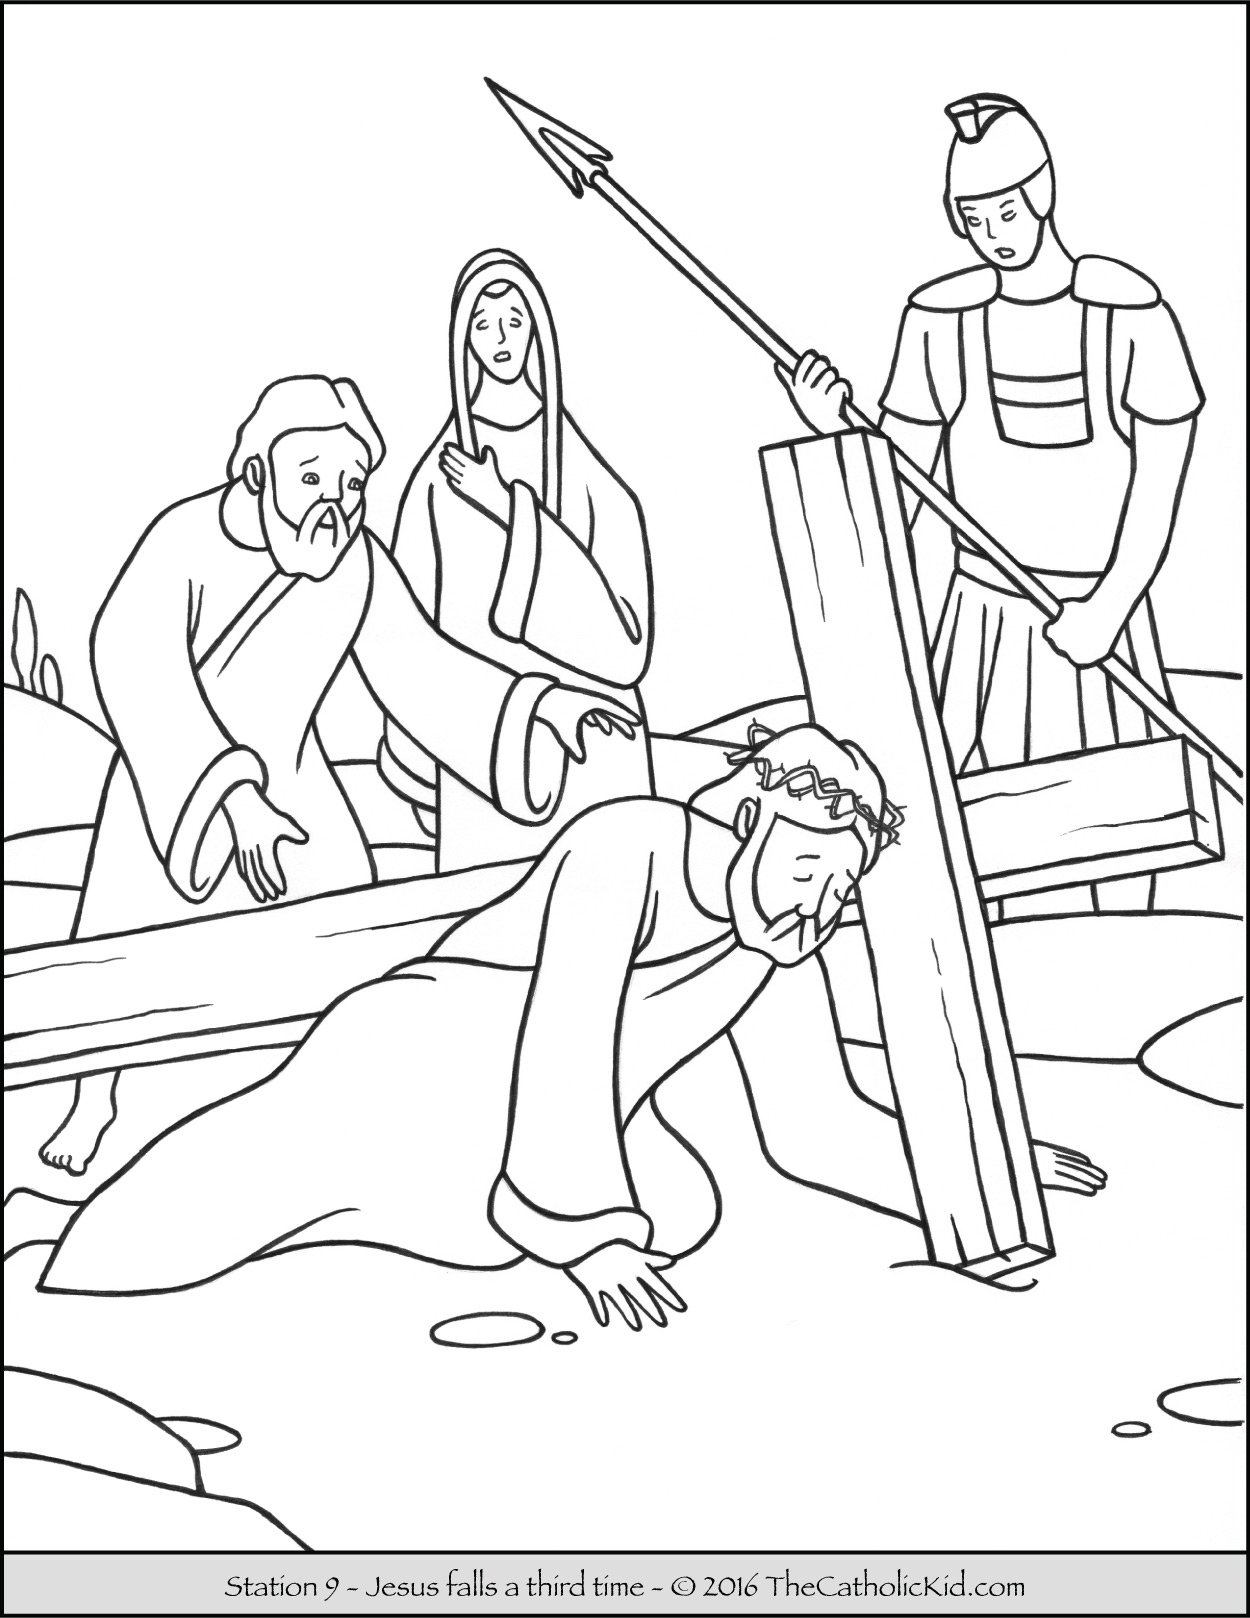 Stations of the Cross Coloring Pages 9 - Jesus falls a third time